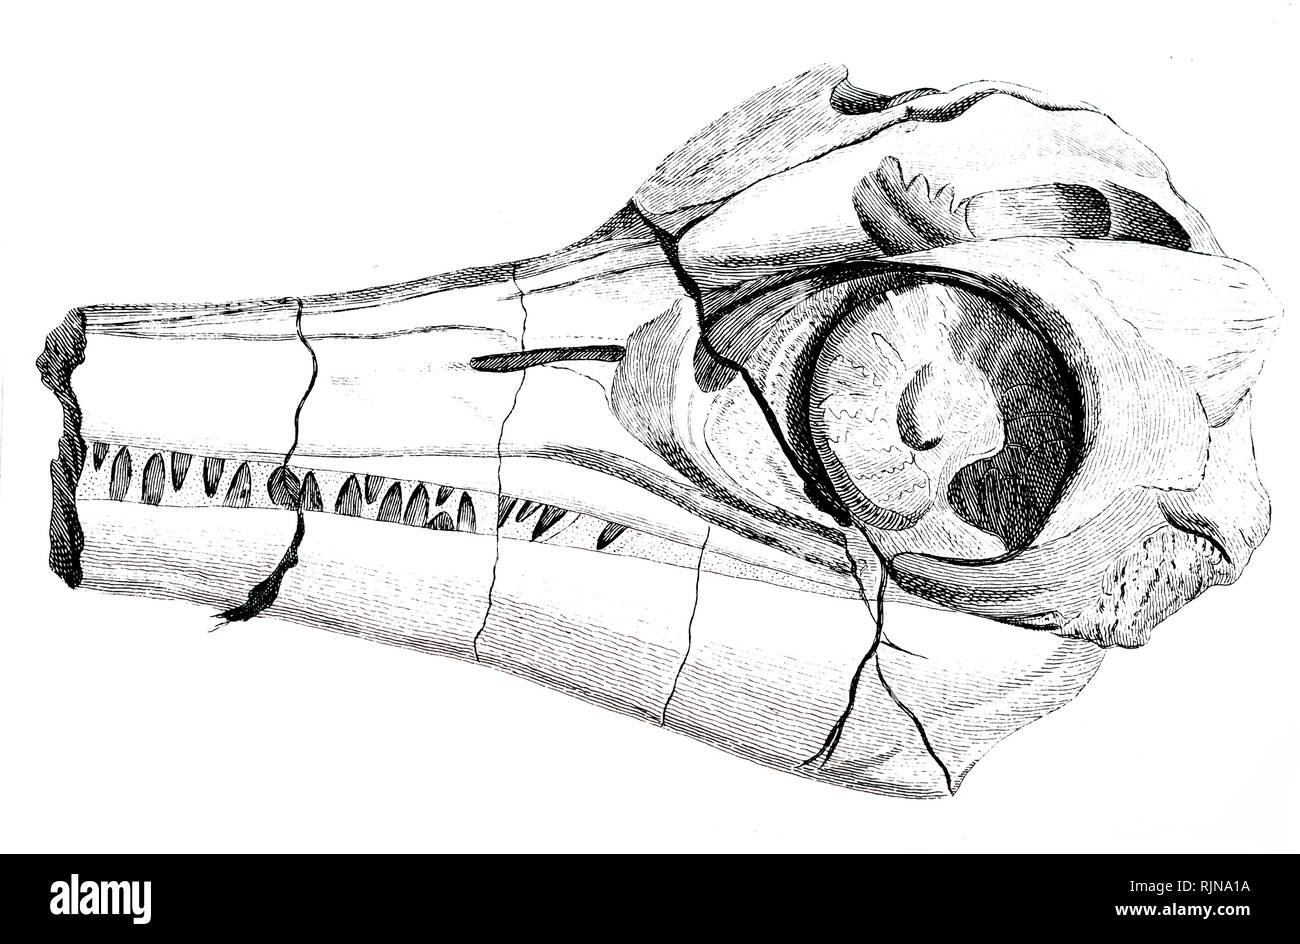 An engraving depicting part of the head of an Ichthyosaurus recovered Dated 19th century - Stock Image